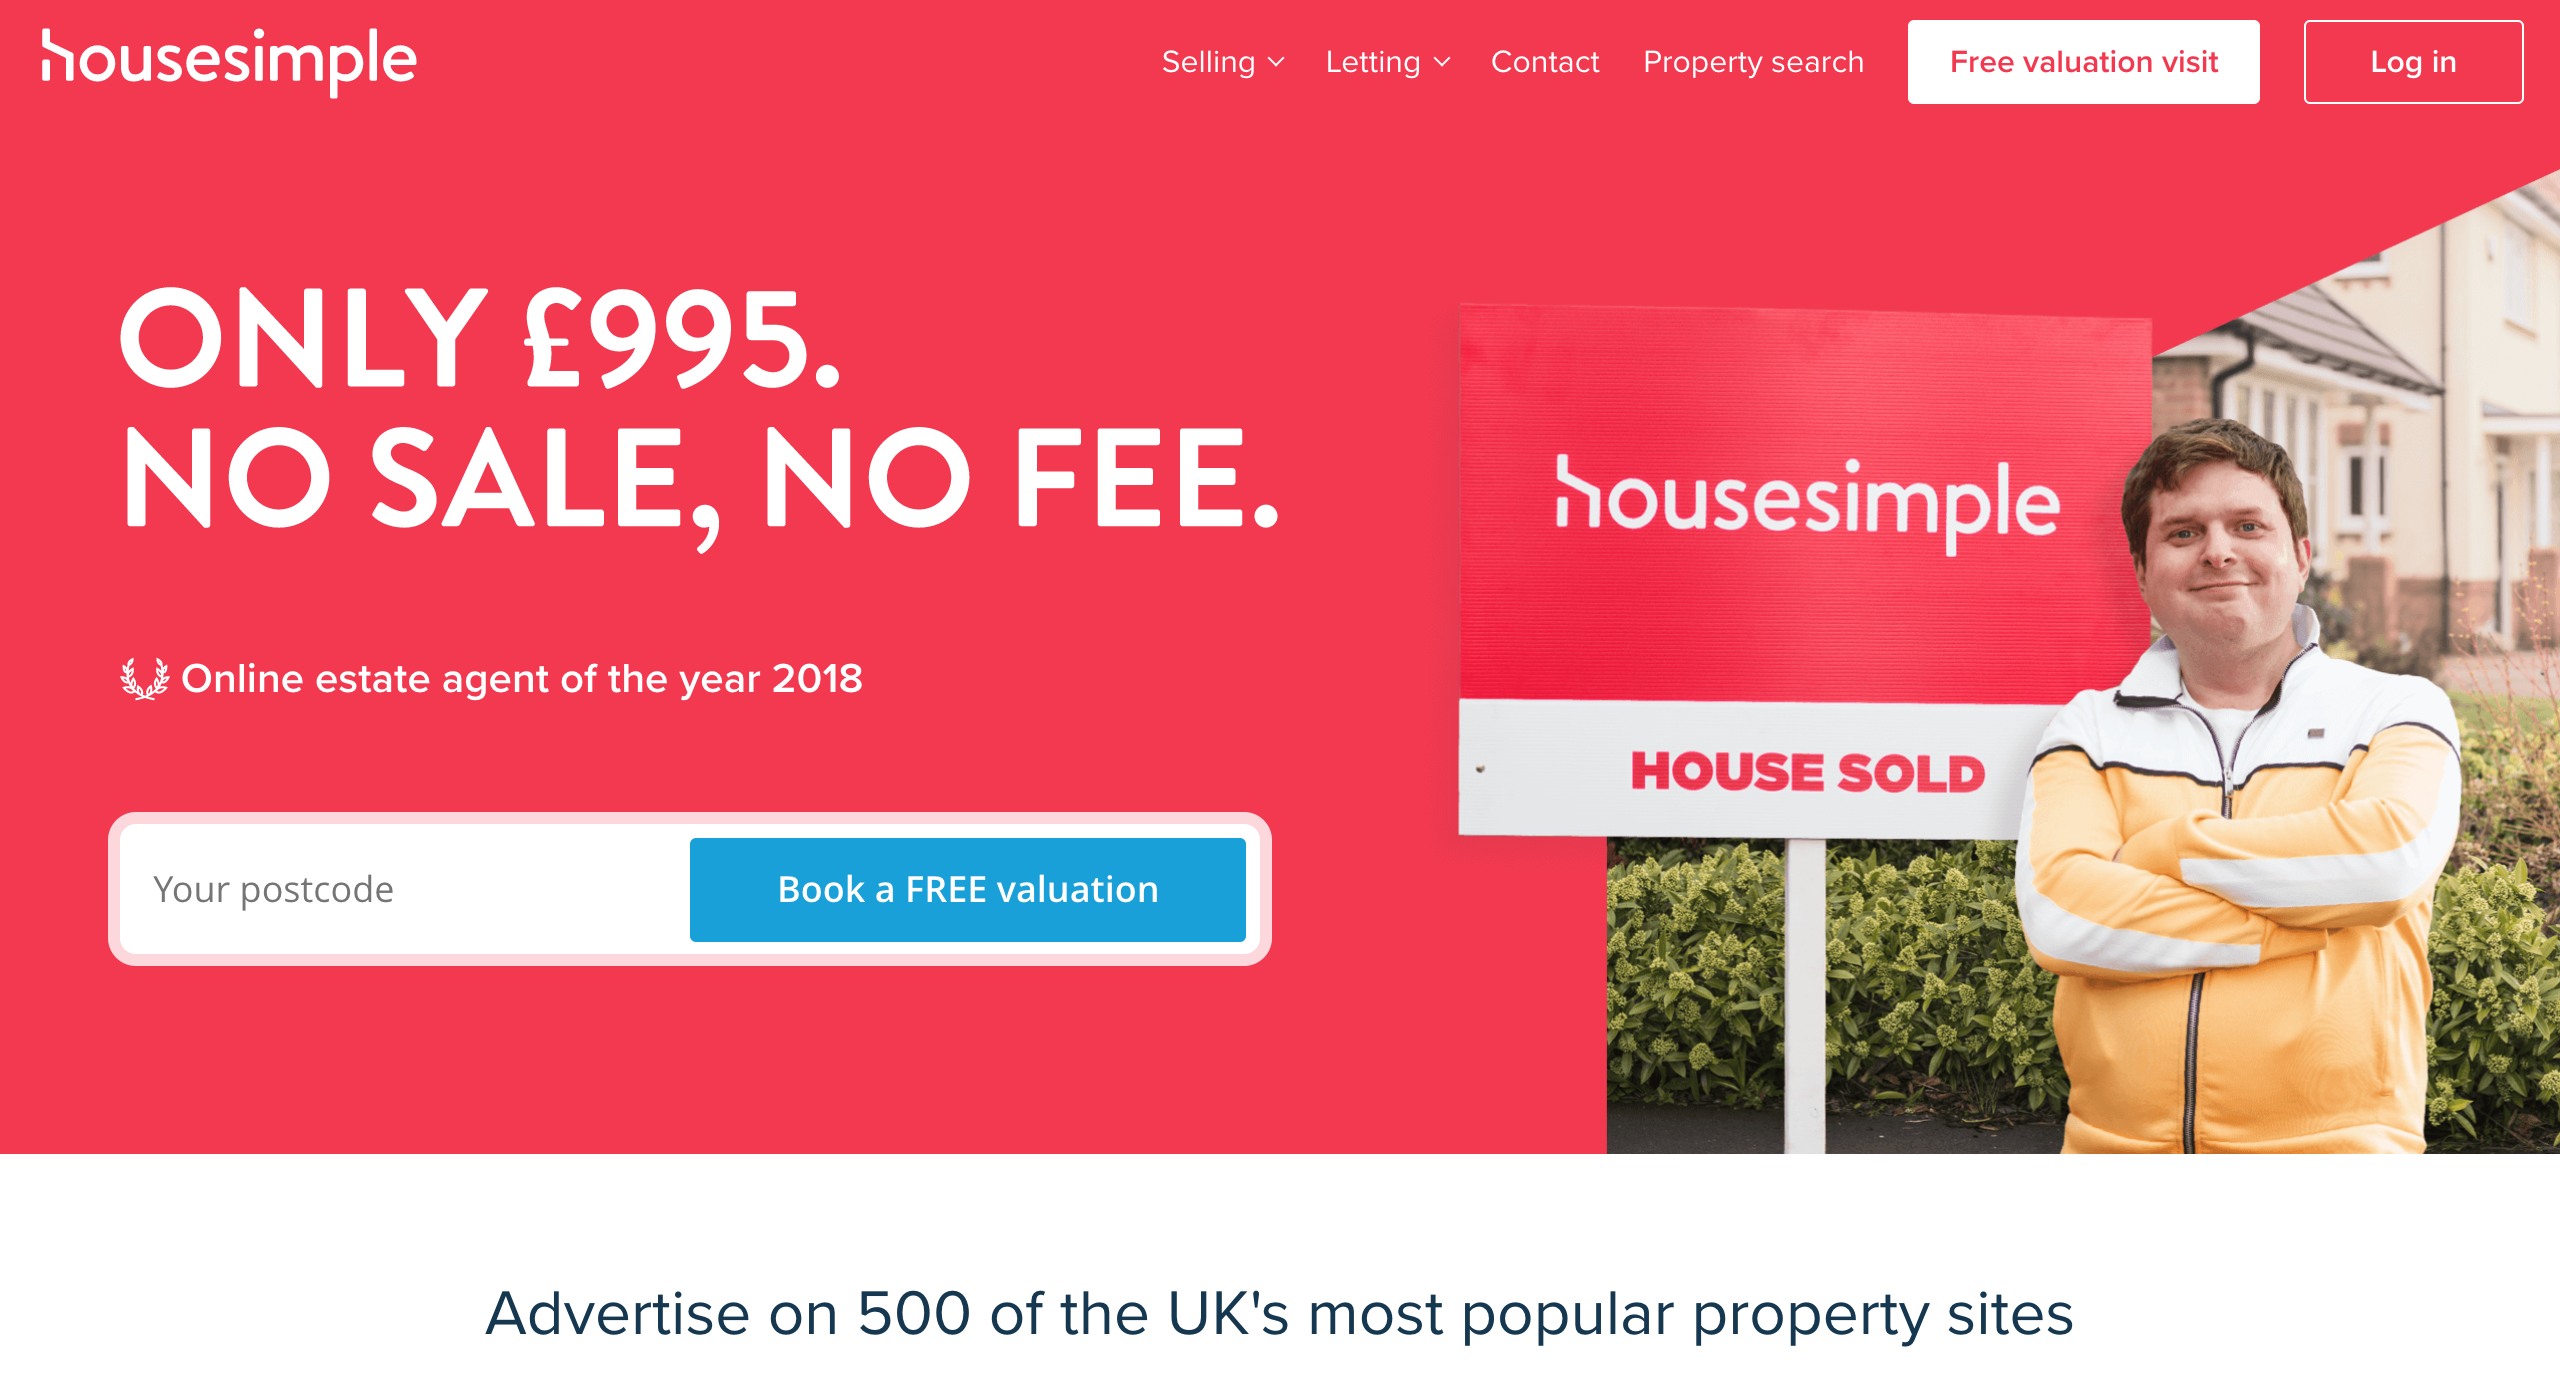 £995 No sale, No Fee